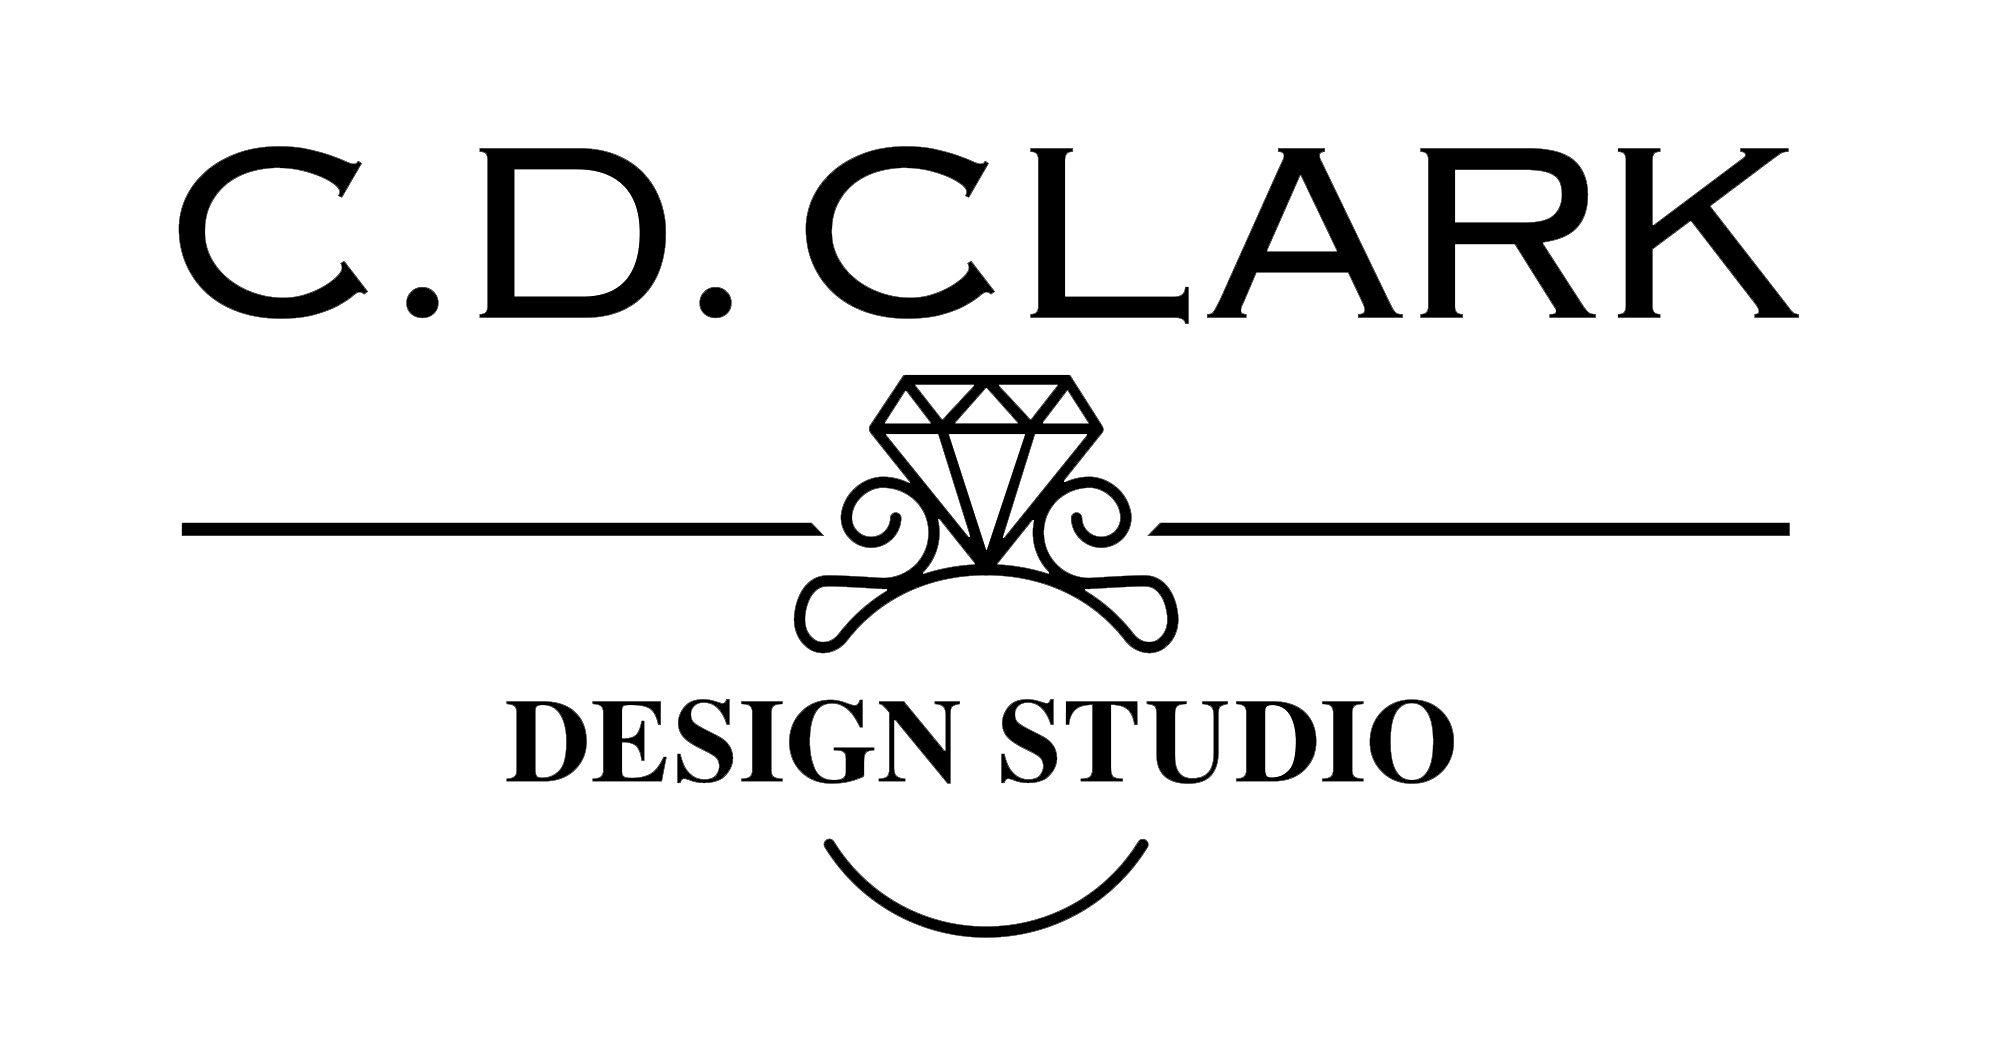 CD Clark Diamonds & Design Studio Logo